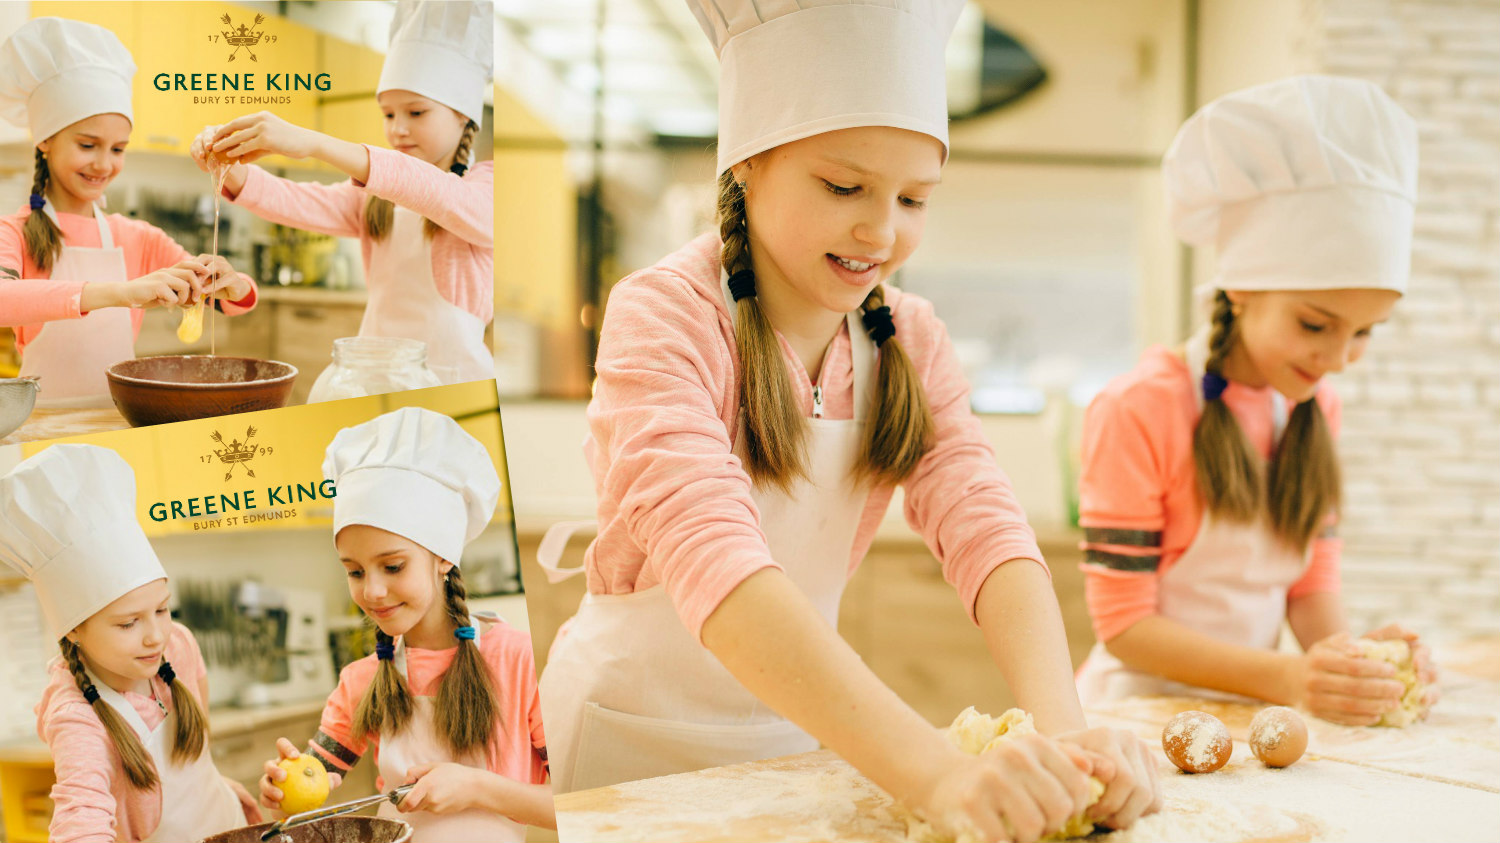 Junior Chef for 10-15 year olds